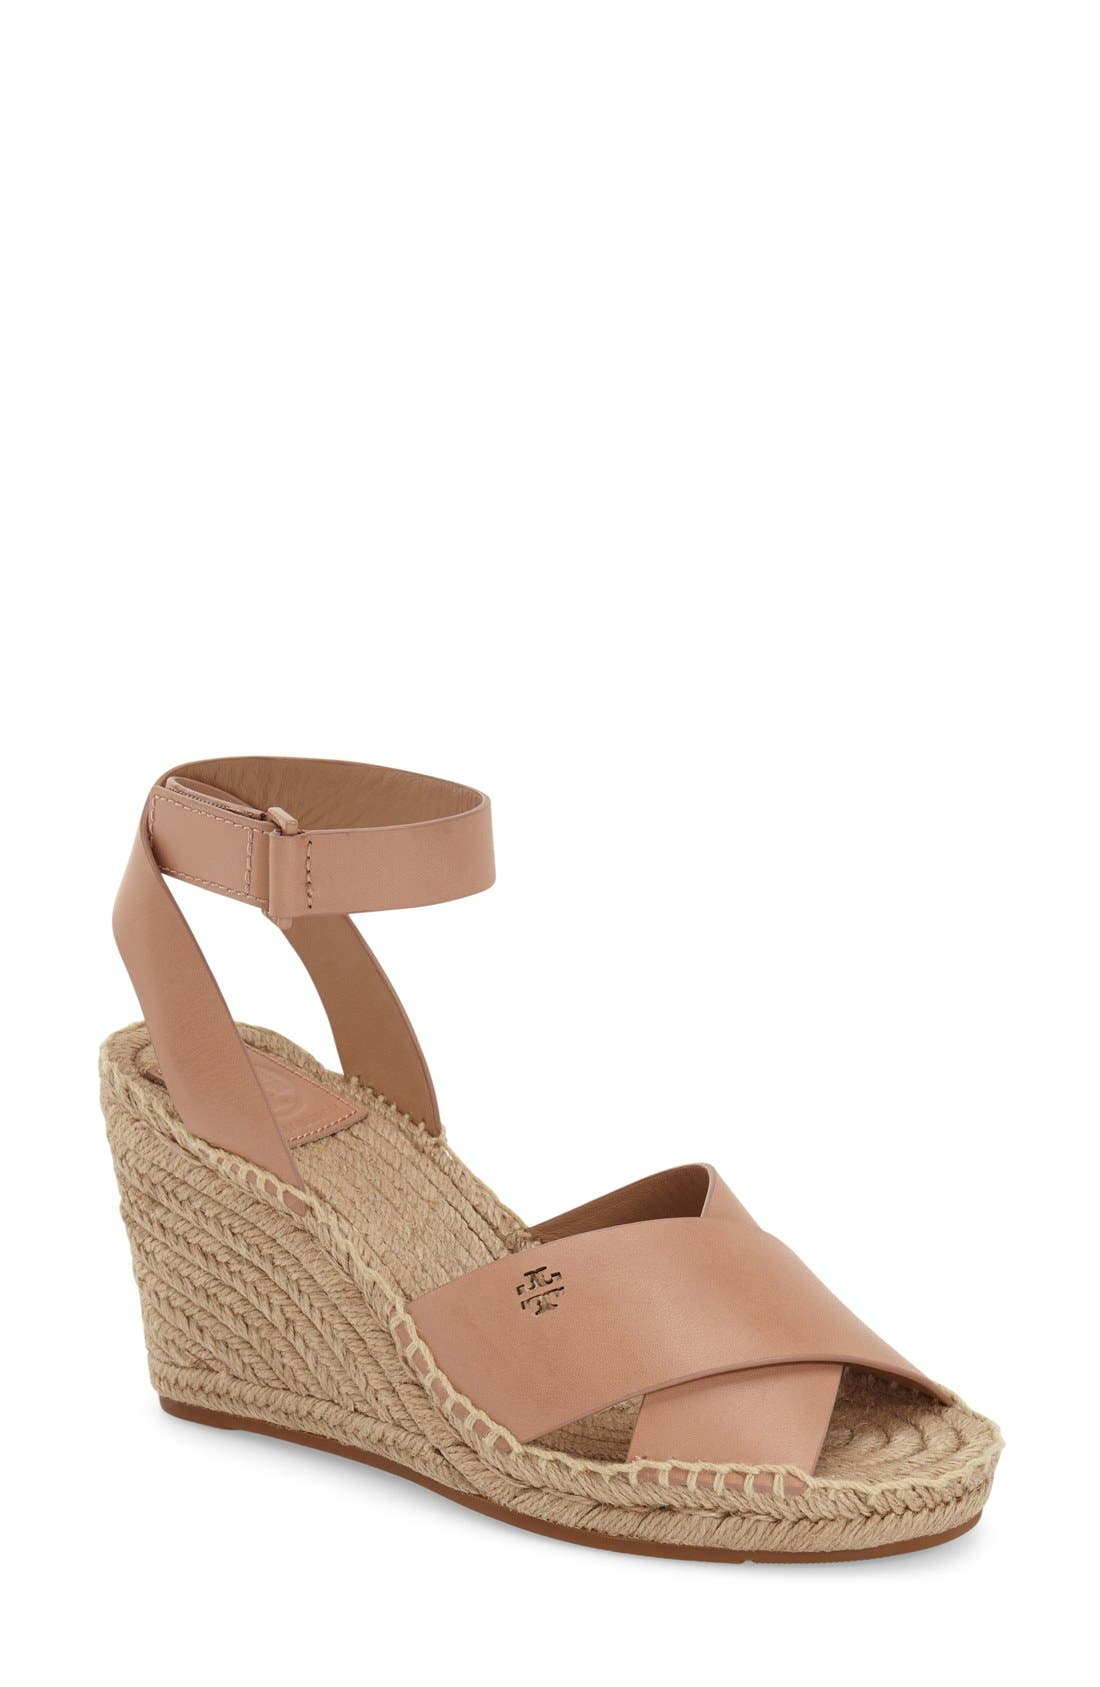 Main Image - Tory Burch 'Bima' Espadrille Wedge (Women)